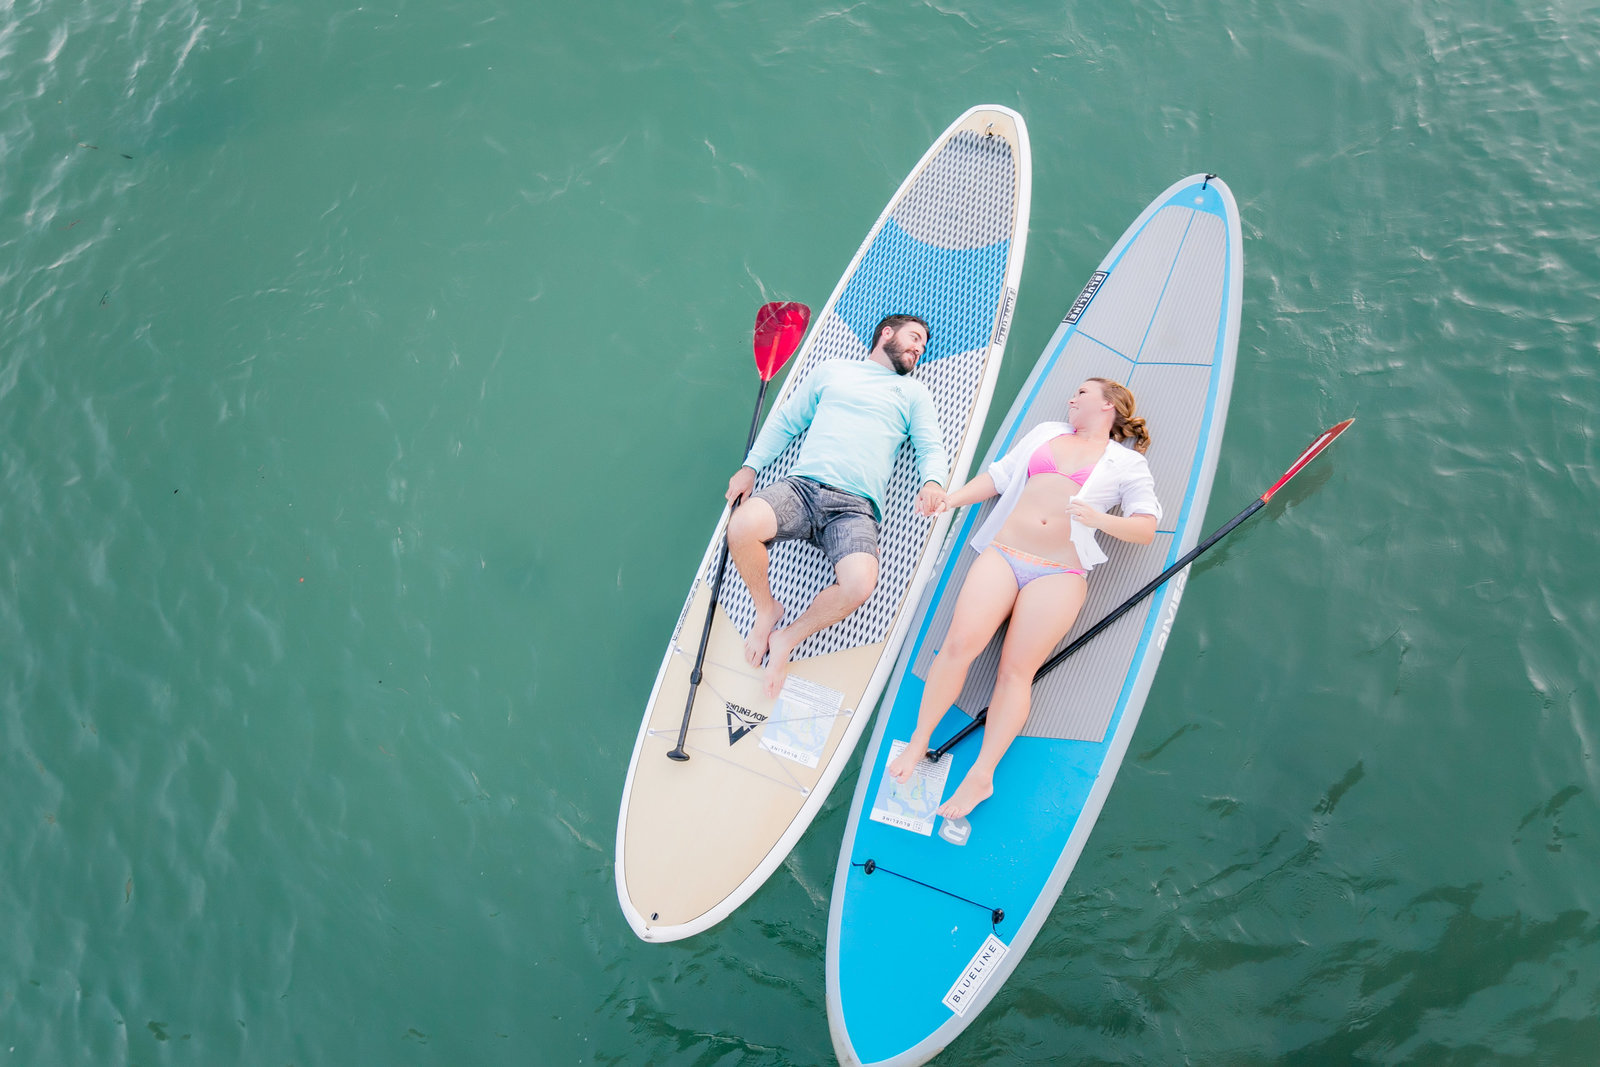 Kayaking engagement Photos